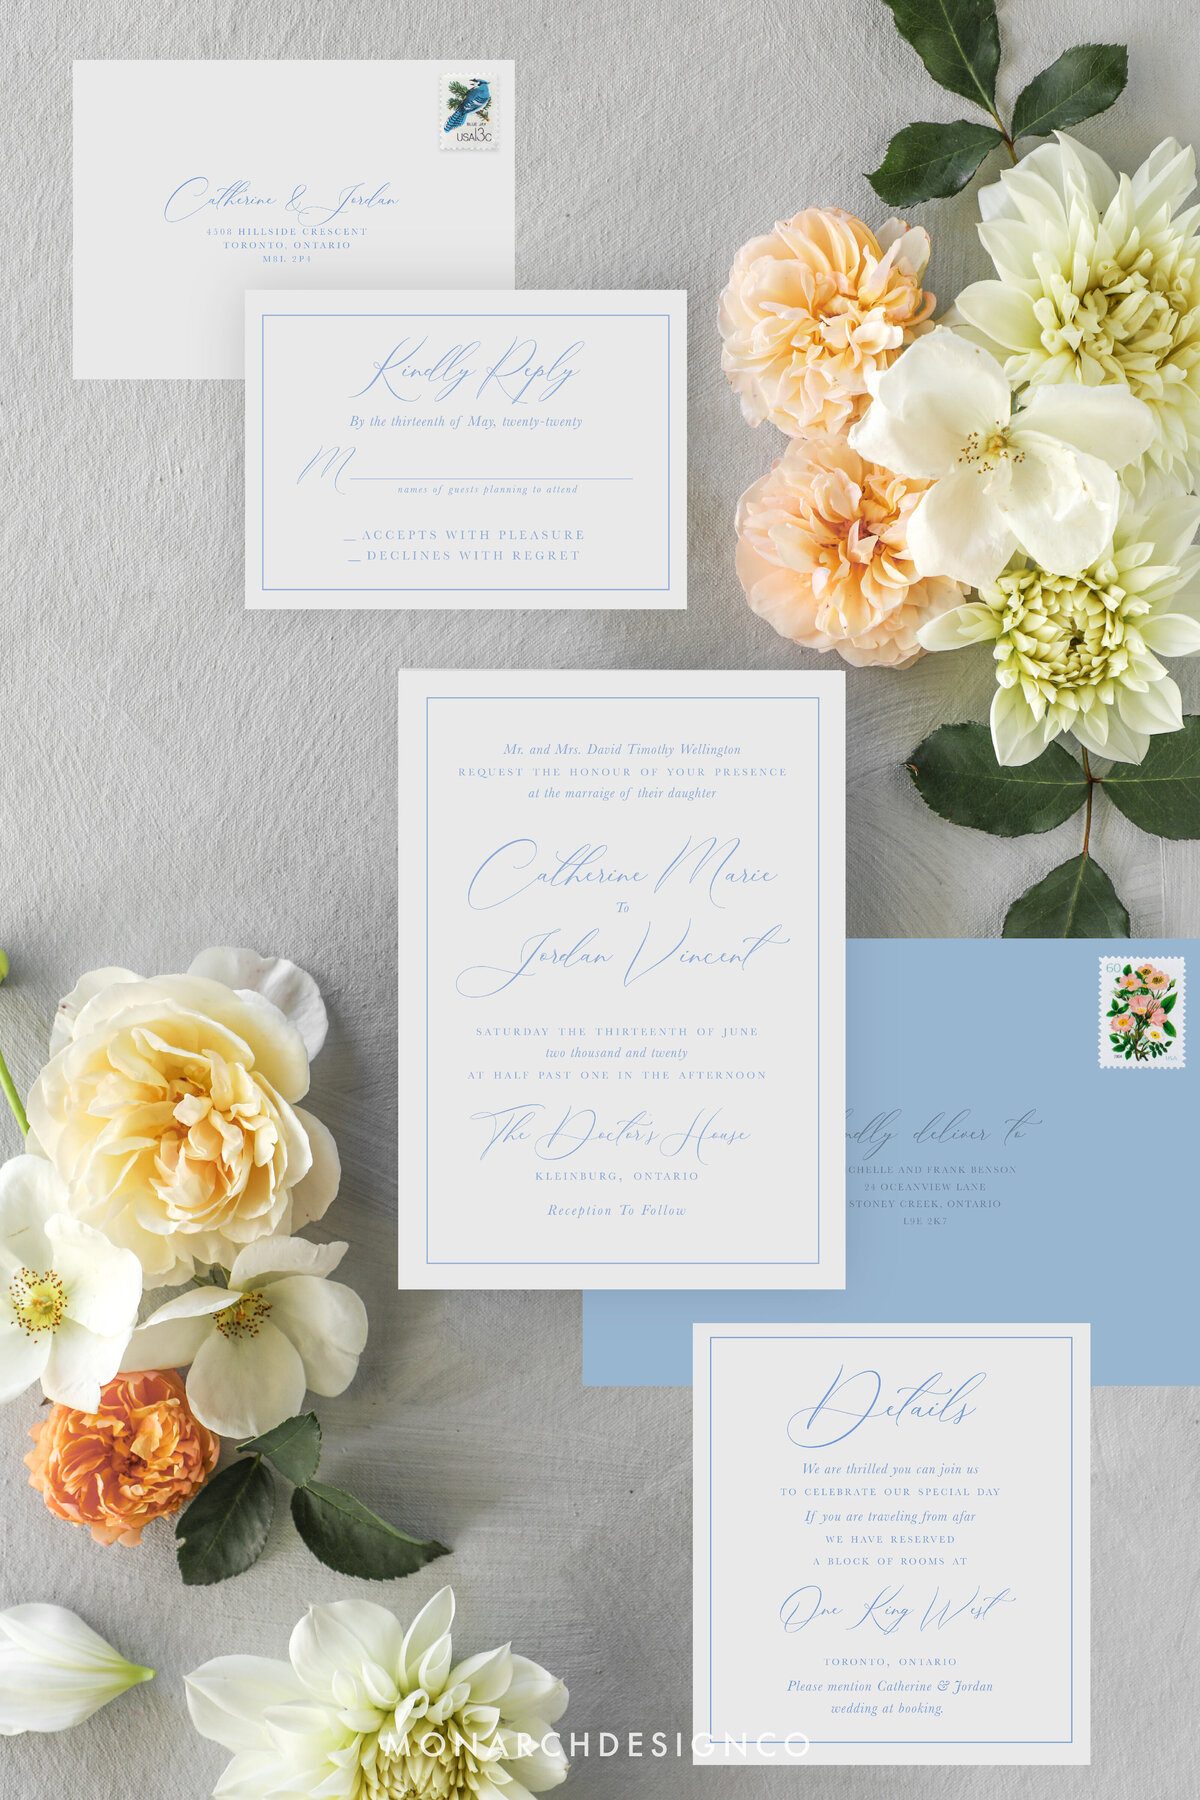 semi-custom-wedding-invitations-monarch-design-co-48